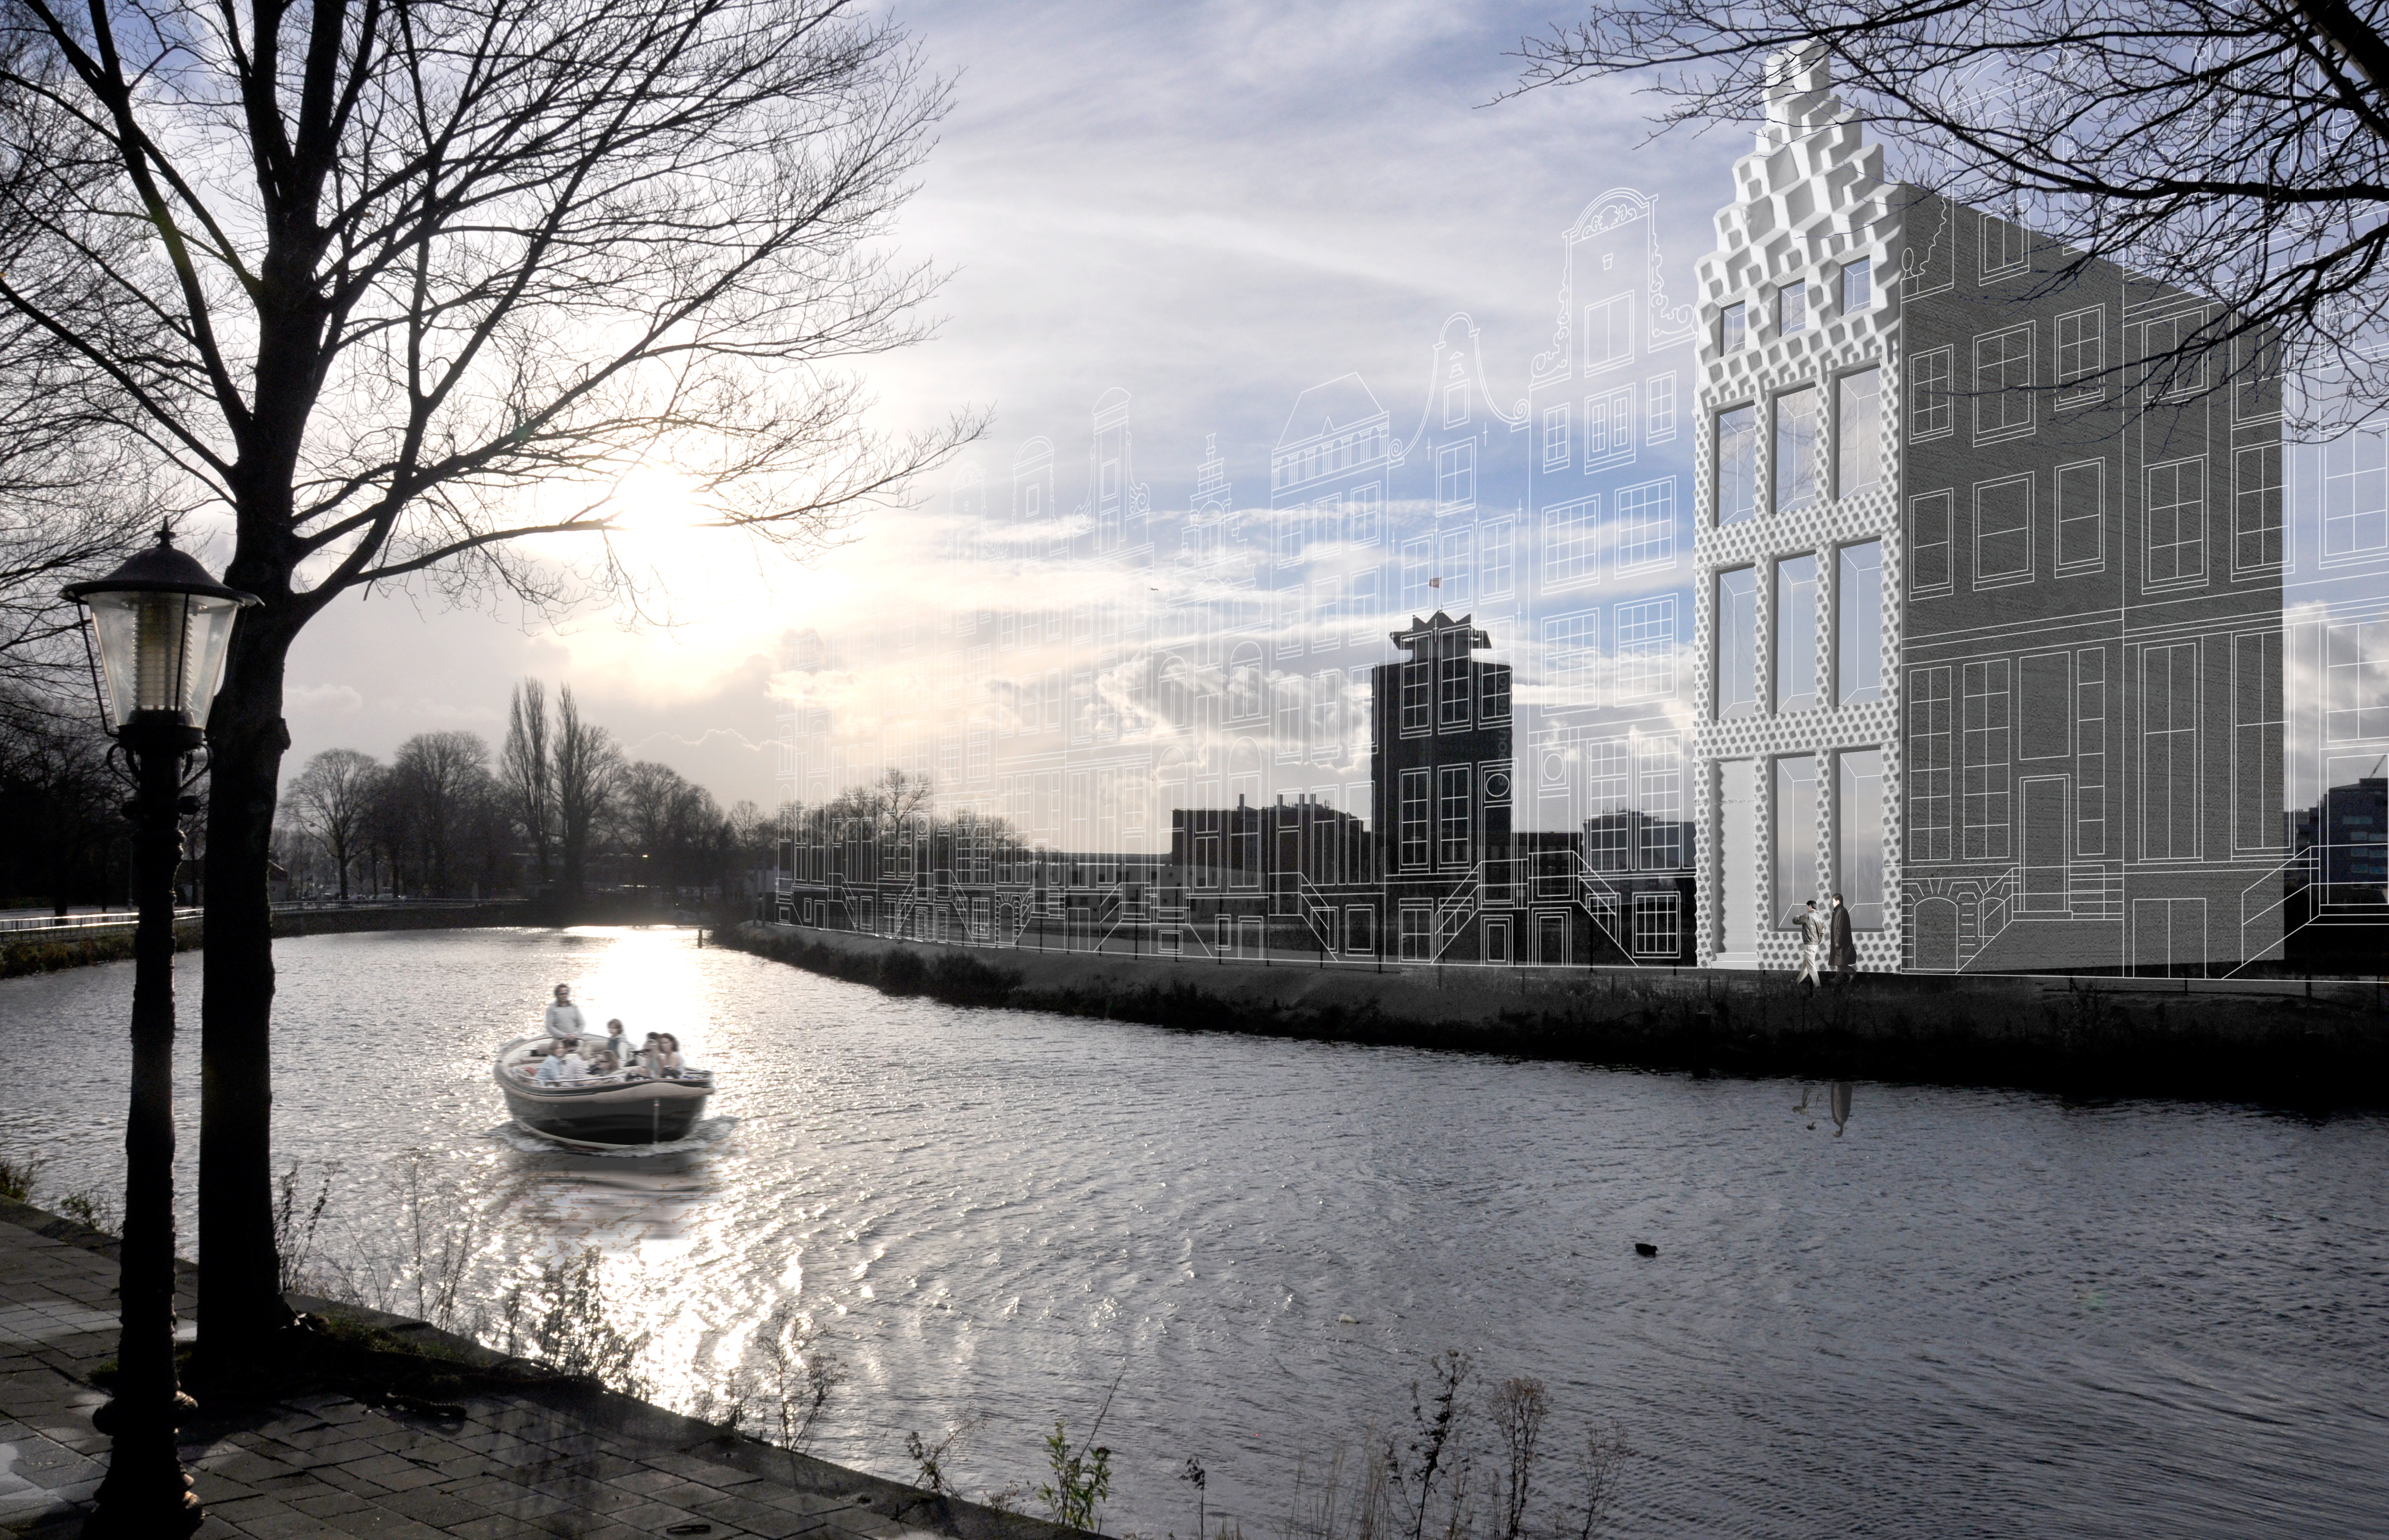 canal house on the river in amsterdam